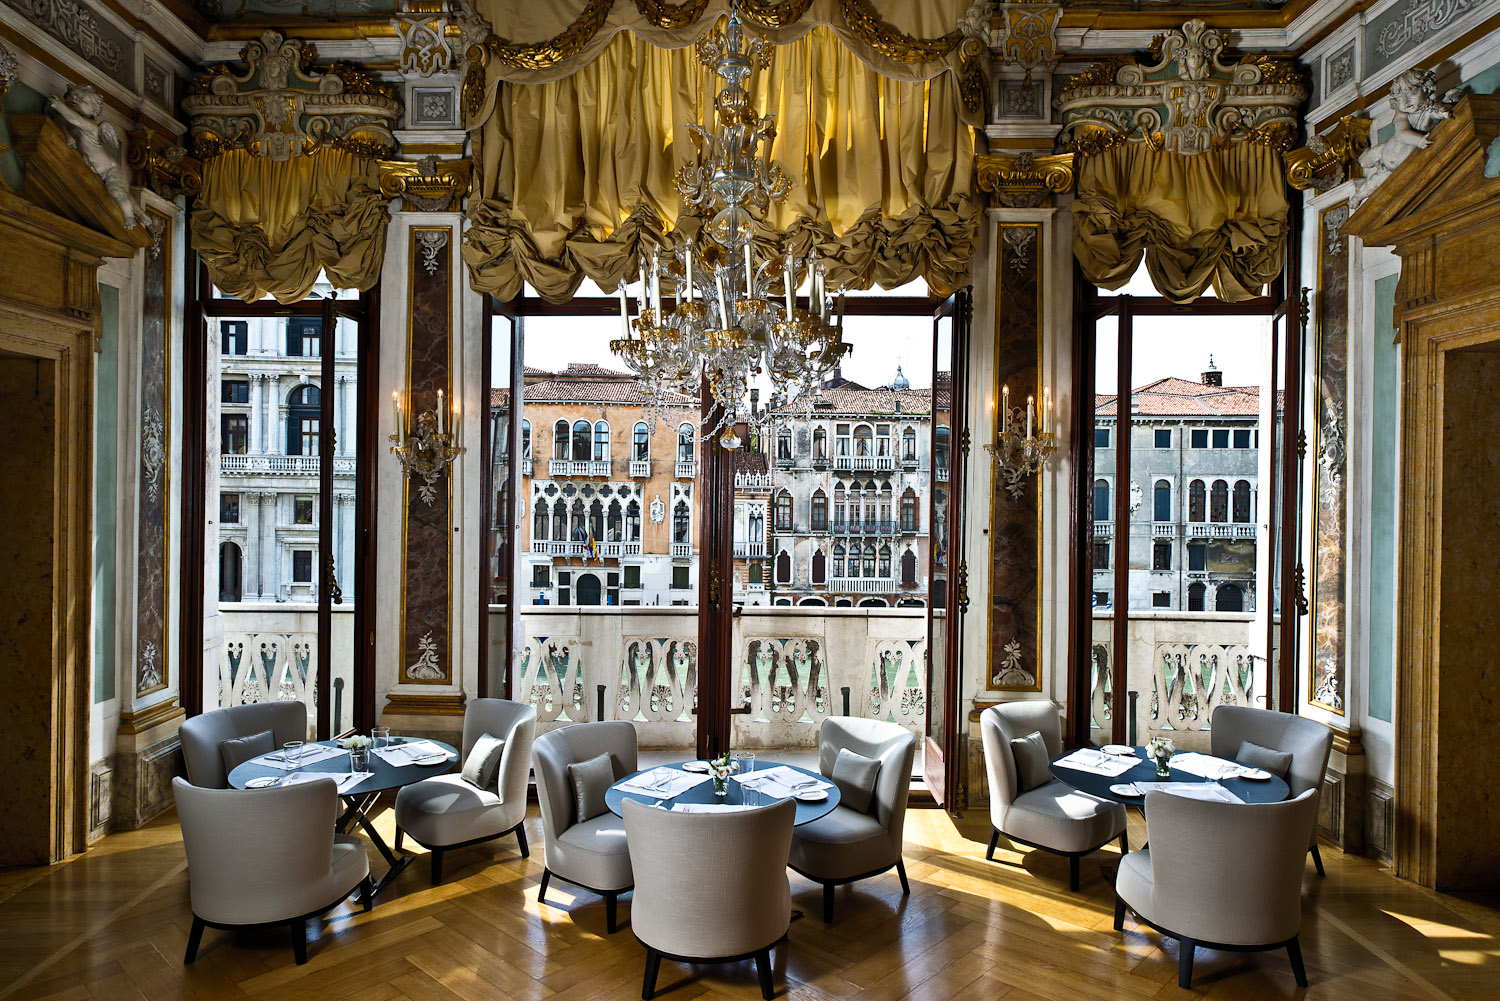 77 aman canal grande venice italy international for Design hotel venise